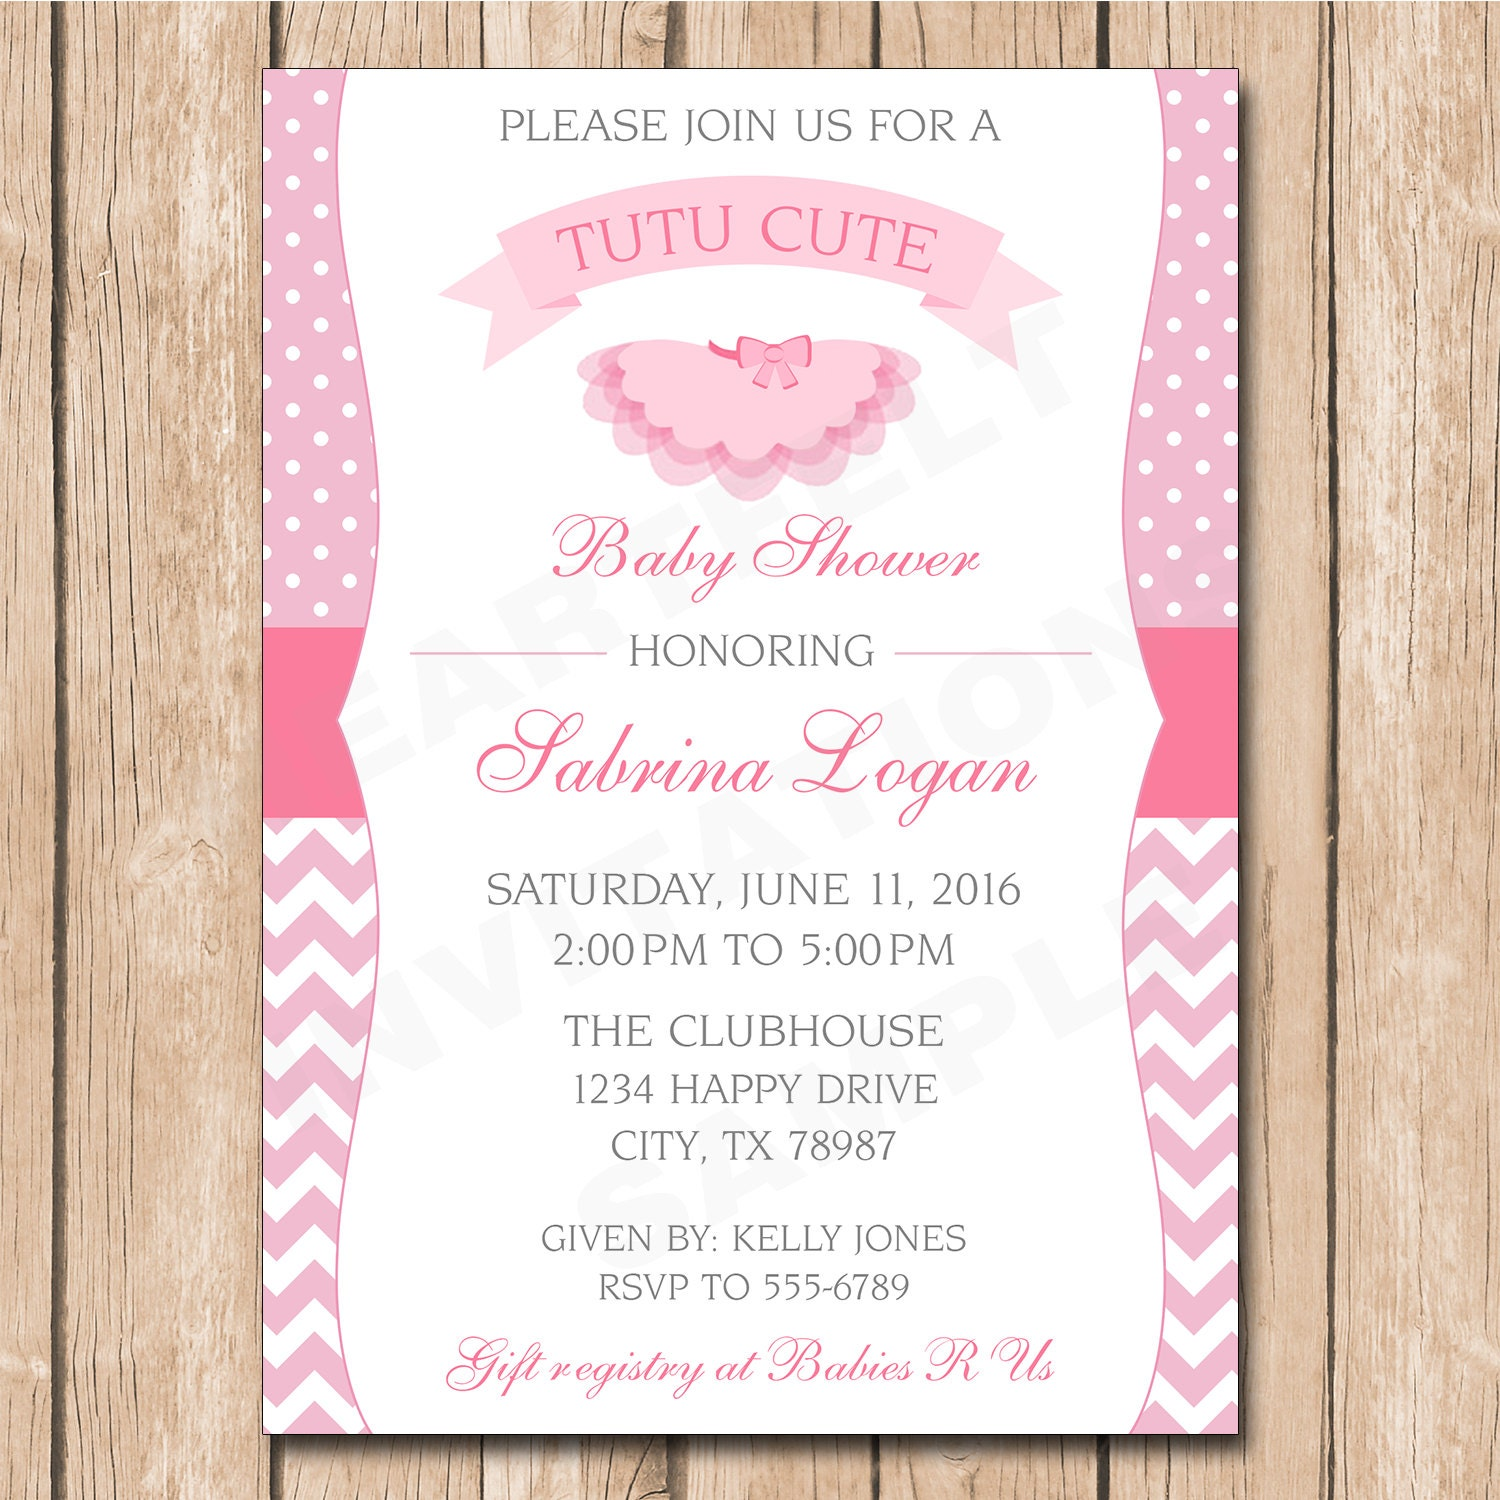 tutu cute baby shower invitation ballerina chevron polka